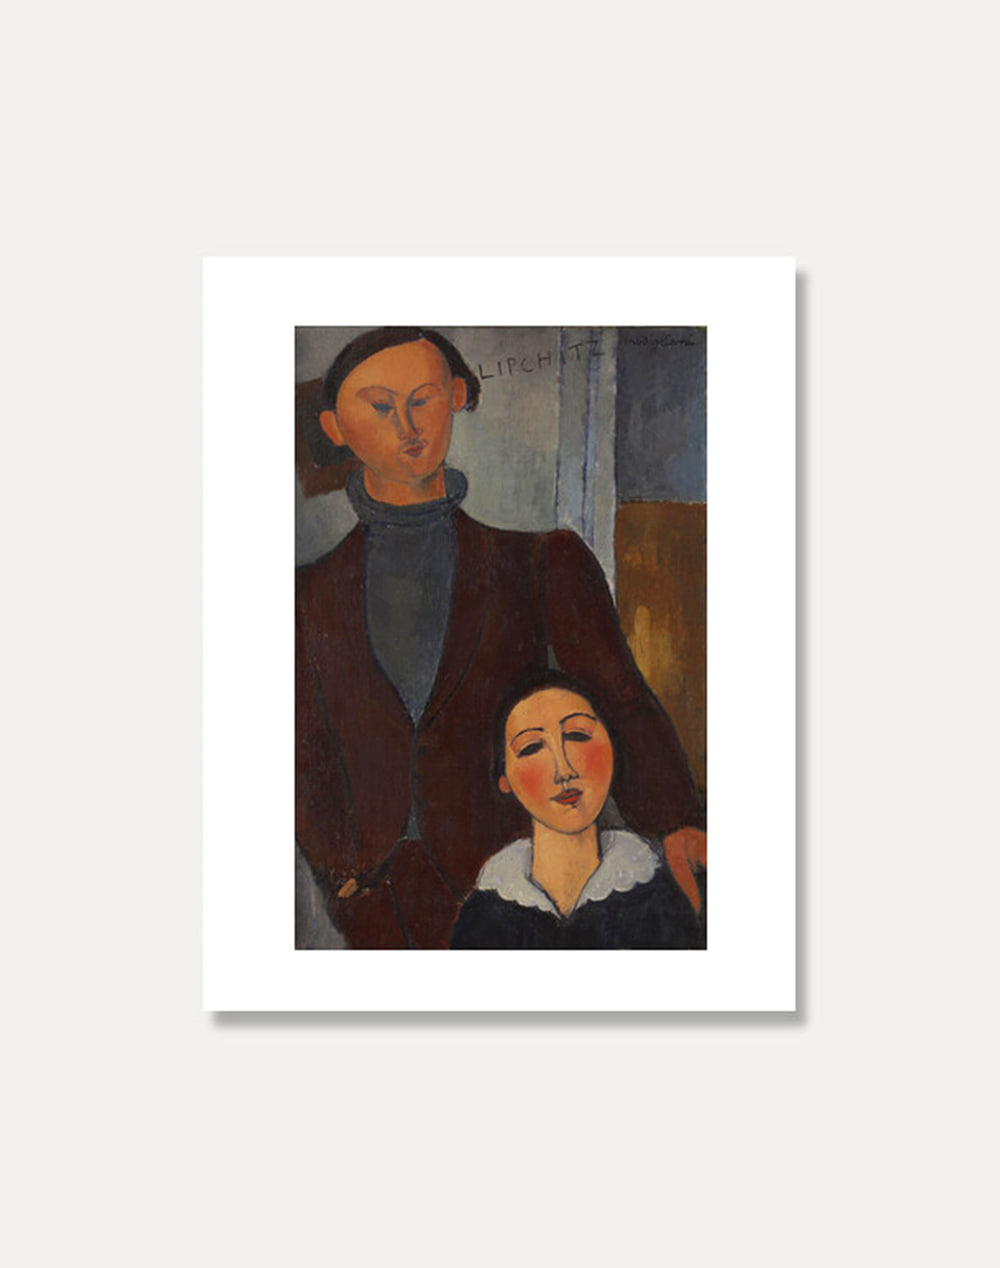 [아메데오 모딜라니]AMEDEO MODIGLIANI ― Jacques and Berthe Lipchitz 20 x 25 cm